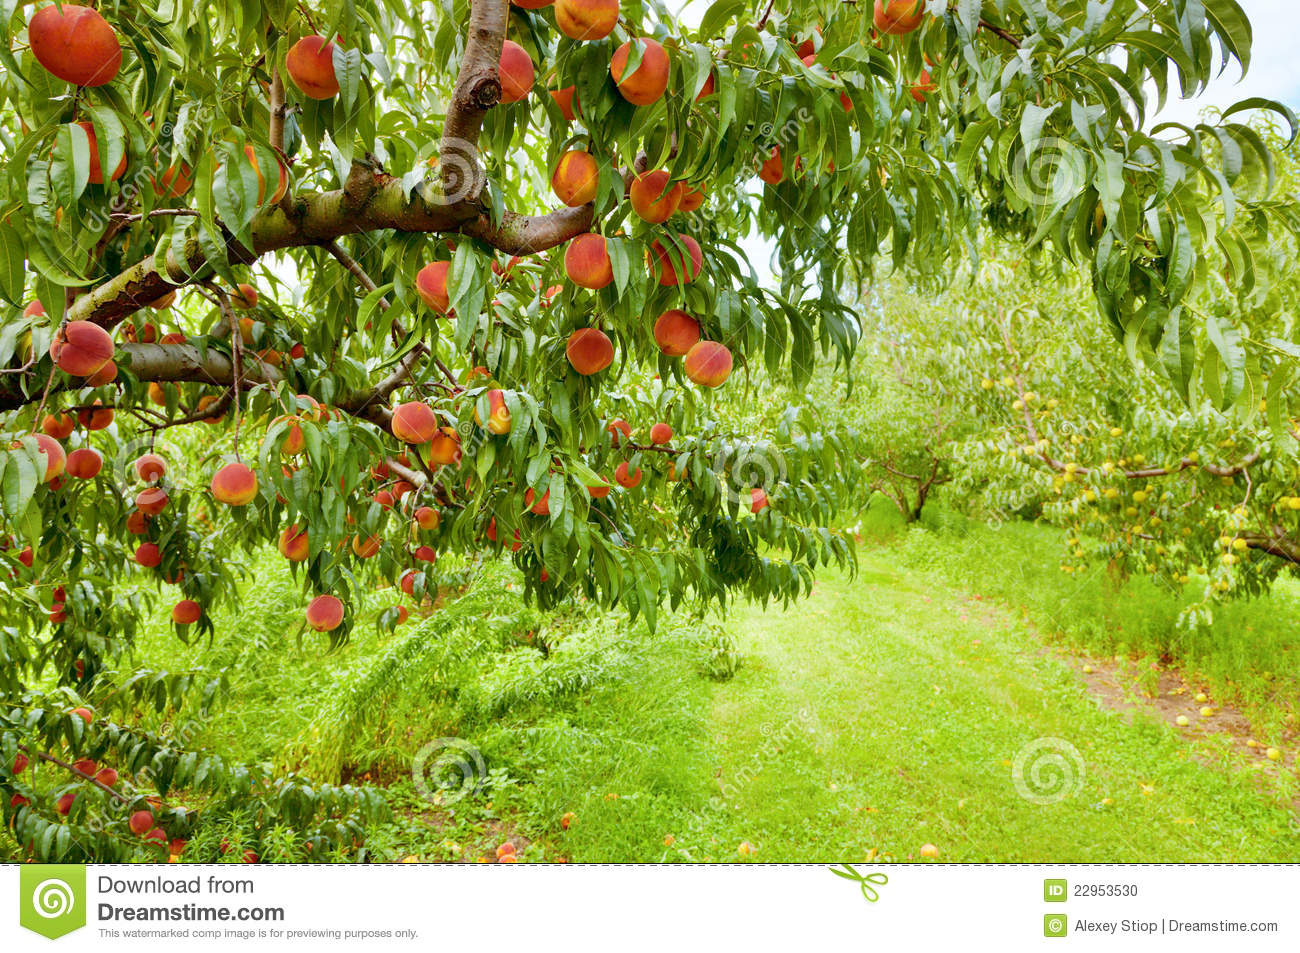 peach orchard divorced singles Singles meetups in jasper here's a look at some singles meetups happening near jasper sign me up  jaemor peach orchard.